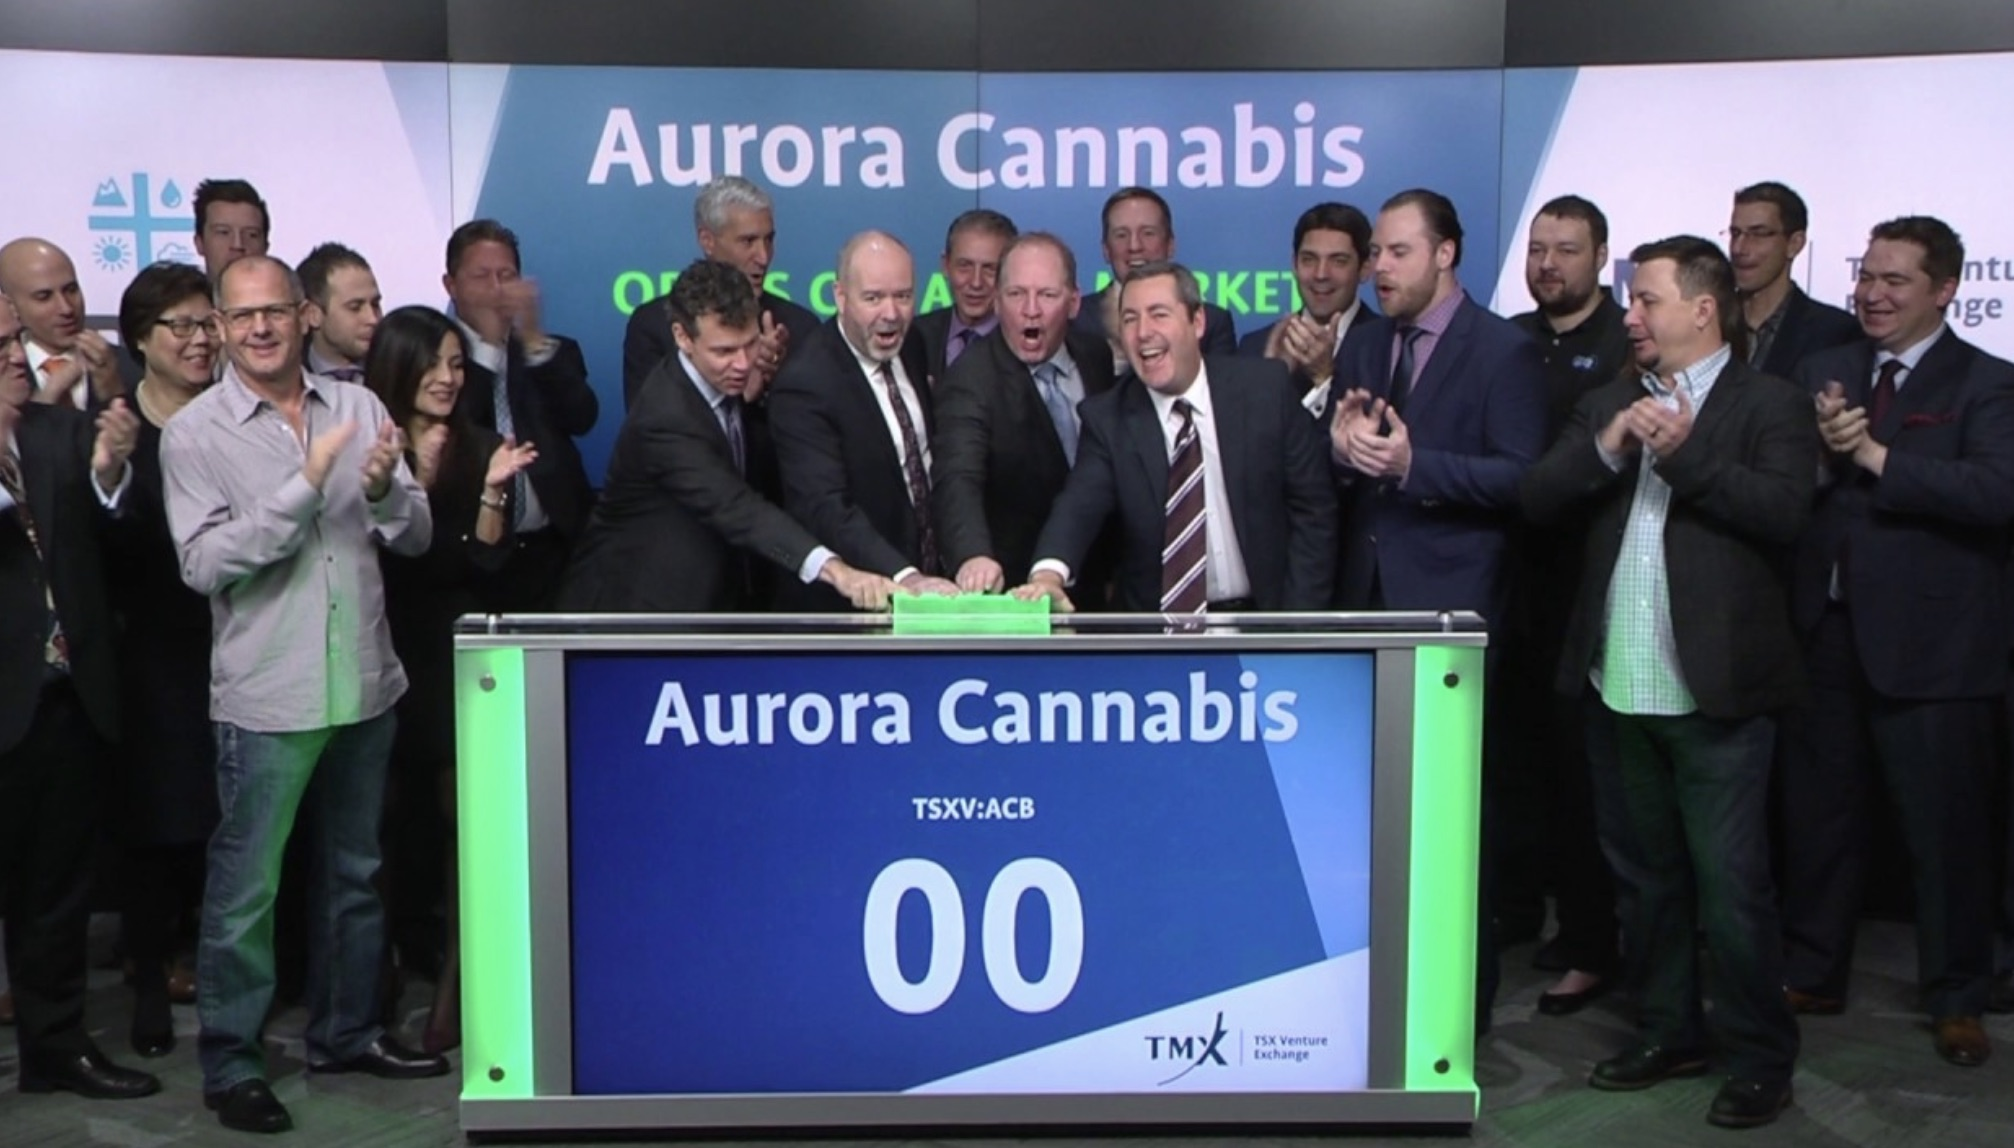 Aurora Cannabis listed on stock markets